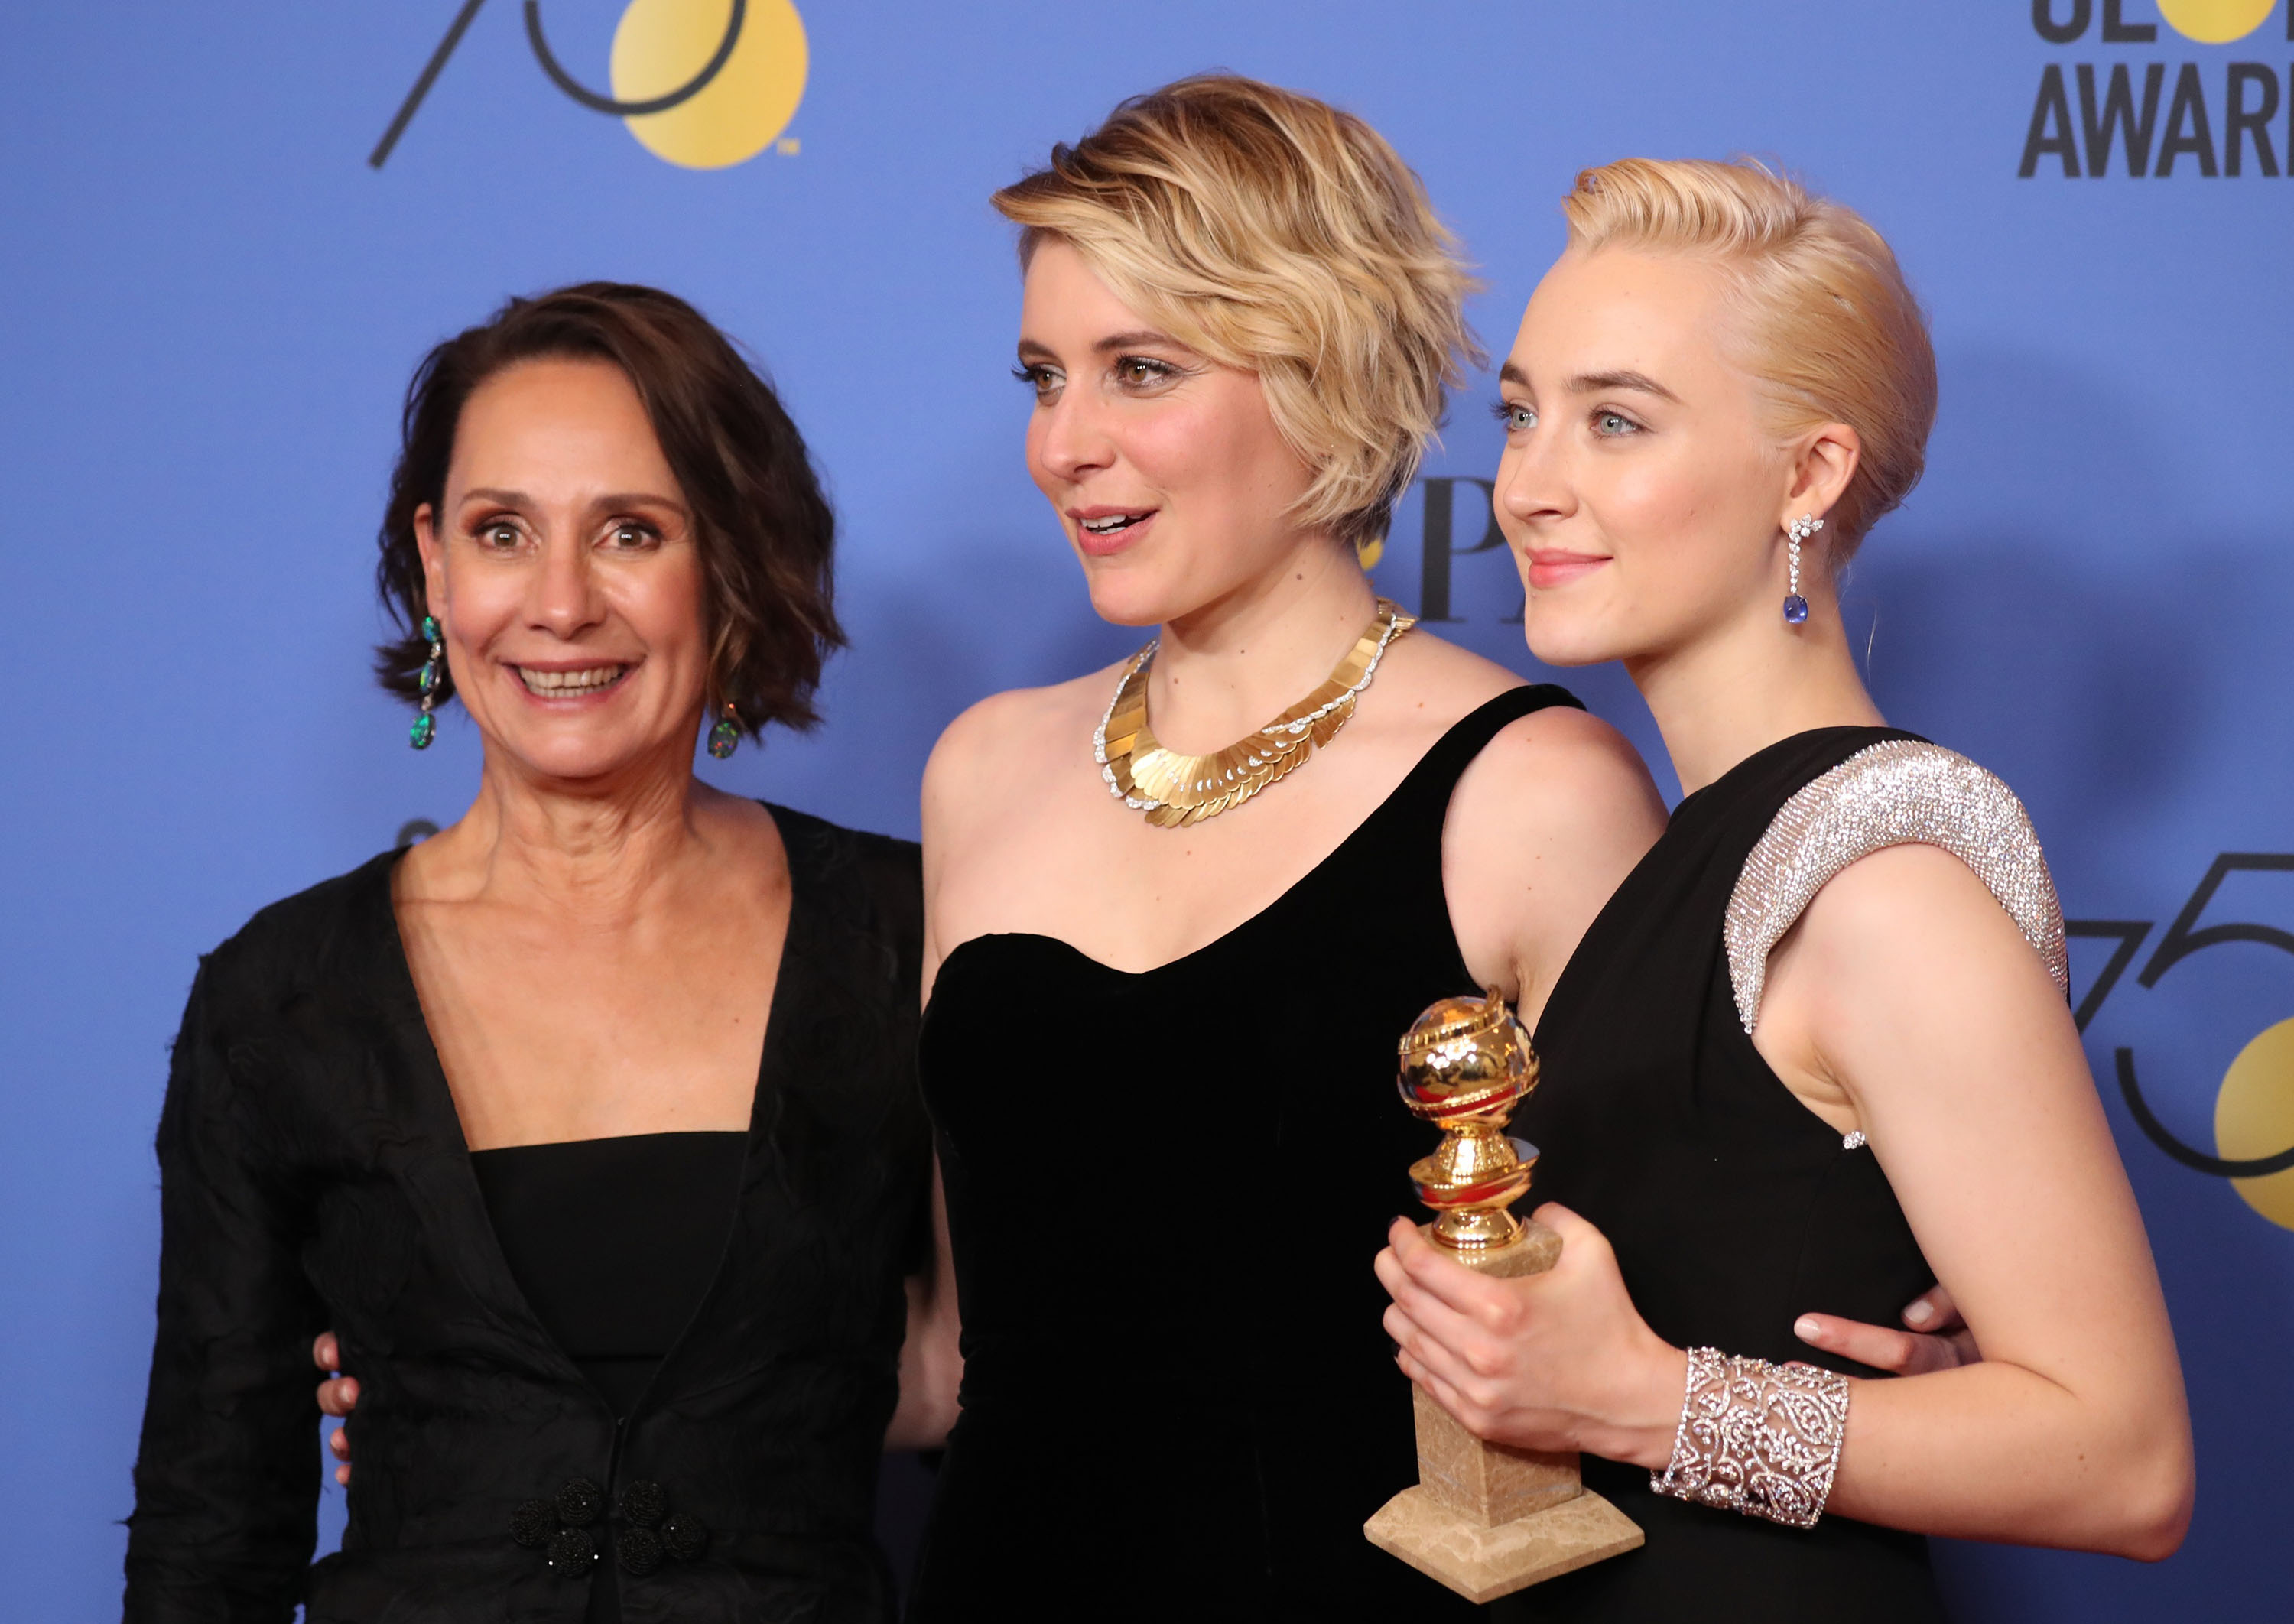 'Big Little Lies', 'Three Billboards…' win big at 75th Golden Globes